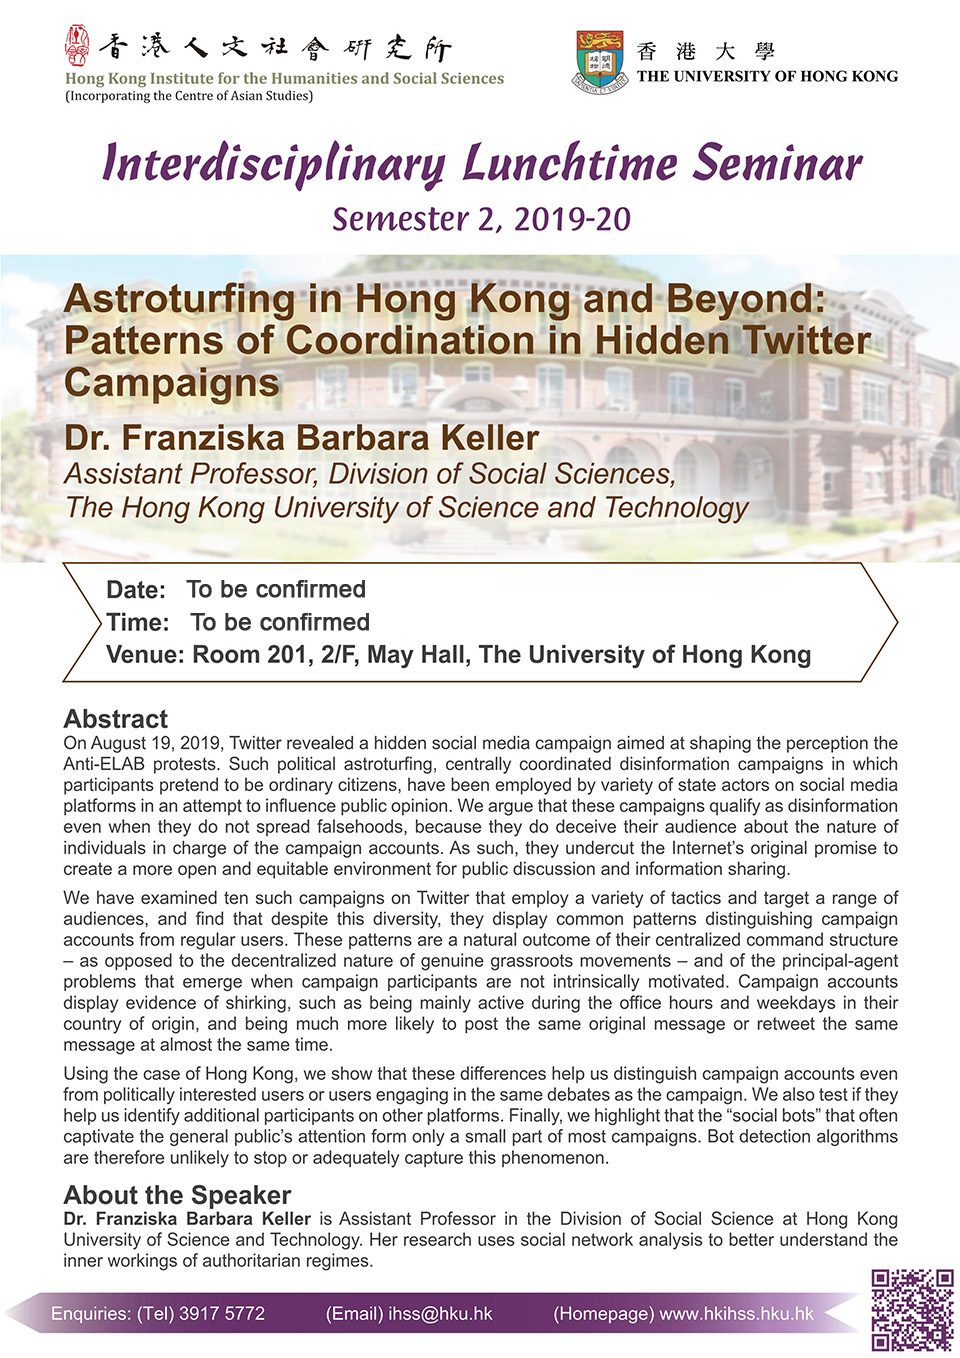 "Interdisciplinary Lunchtime Seminar on ""Astroturfing in Hong Kong and Beyond: Patterns of Coordination in Hidden Twitter Campaigns"" by Dr. Franziska Barbara Keller"